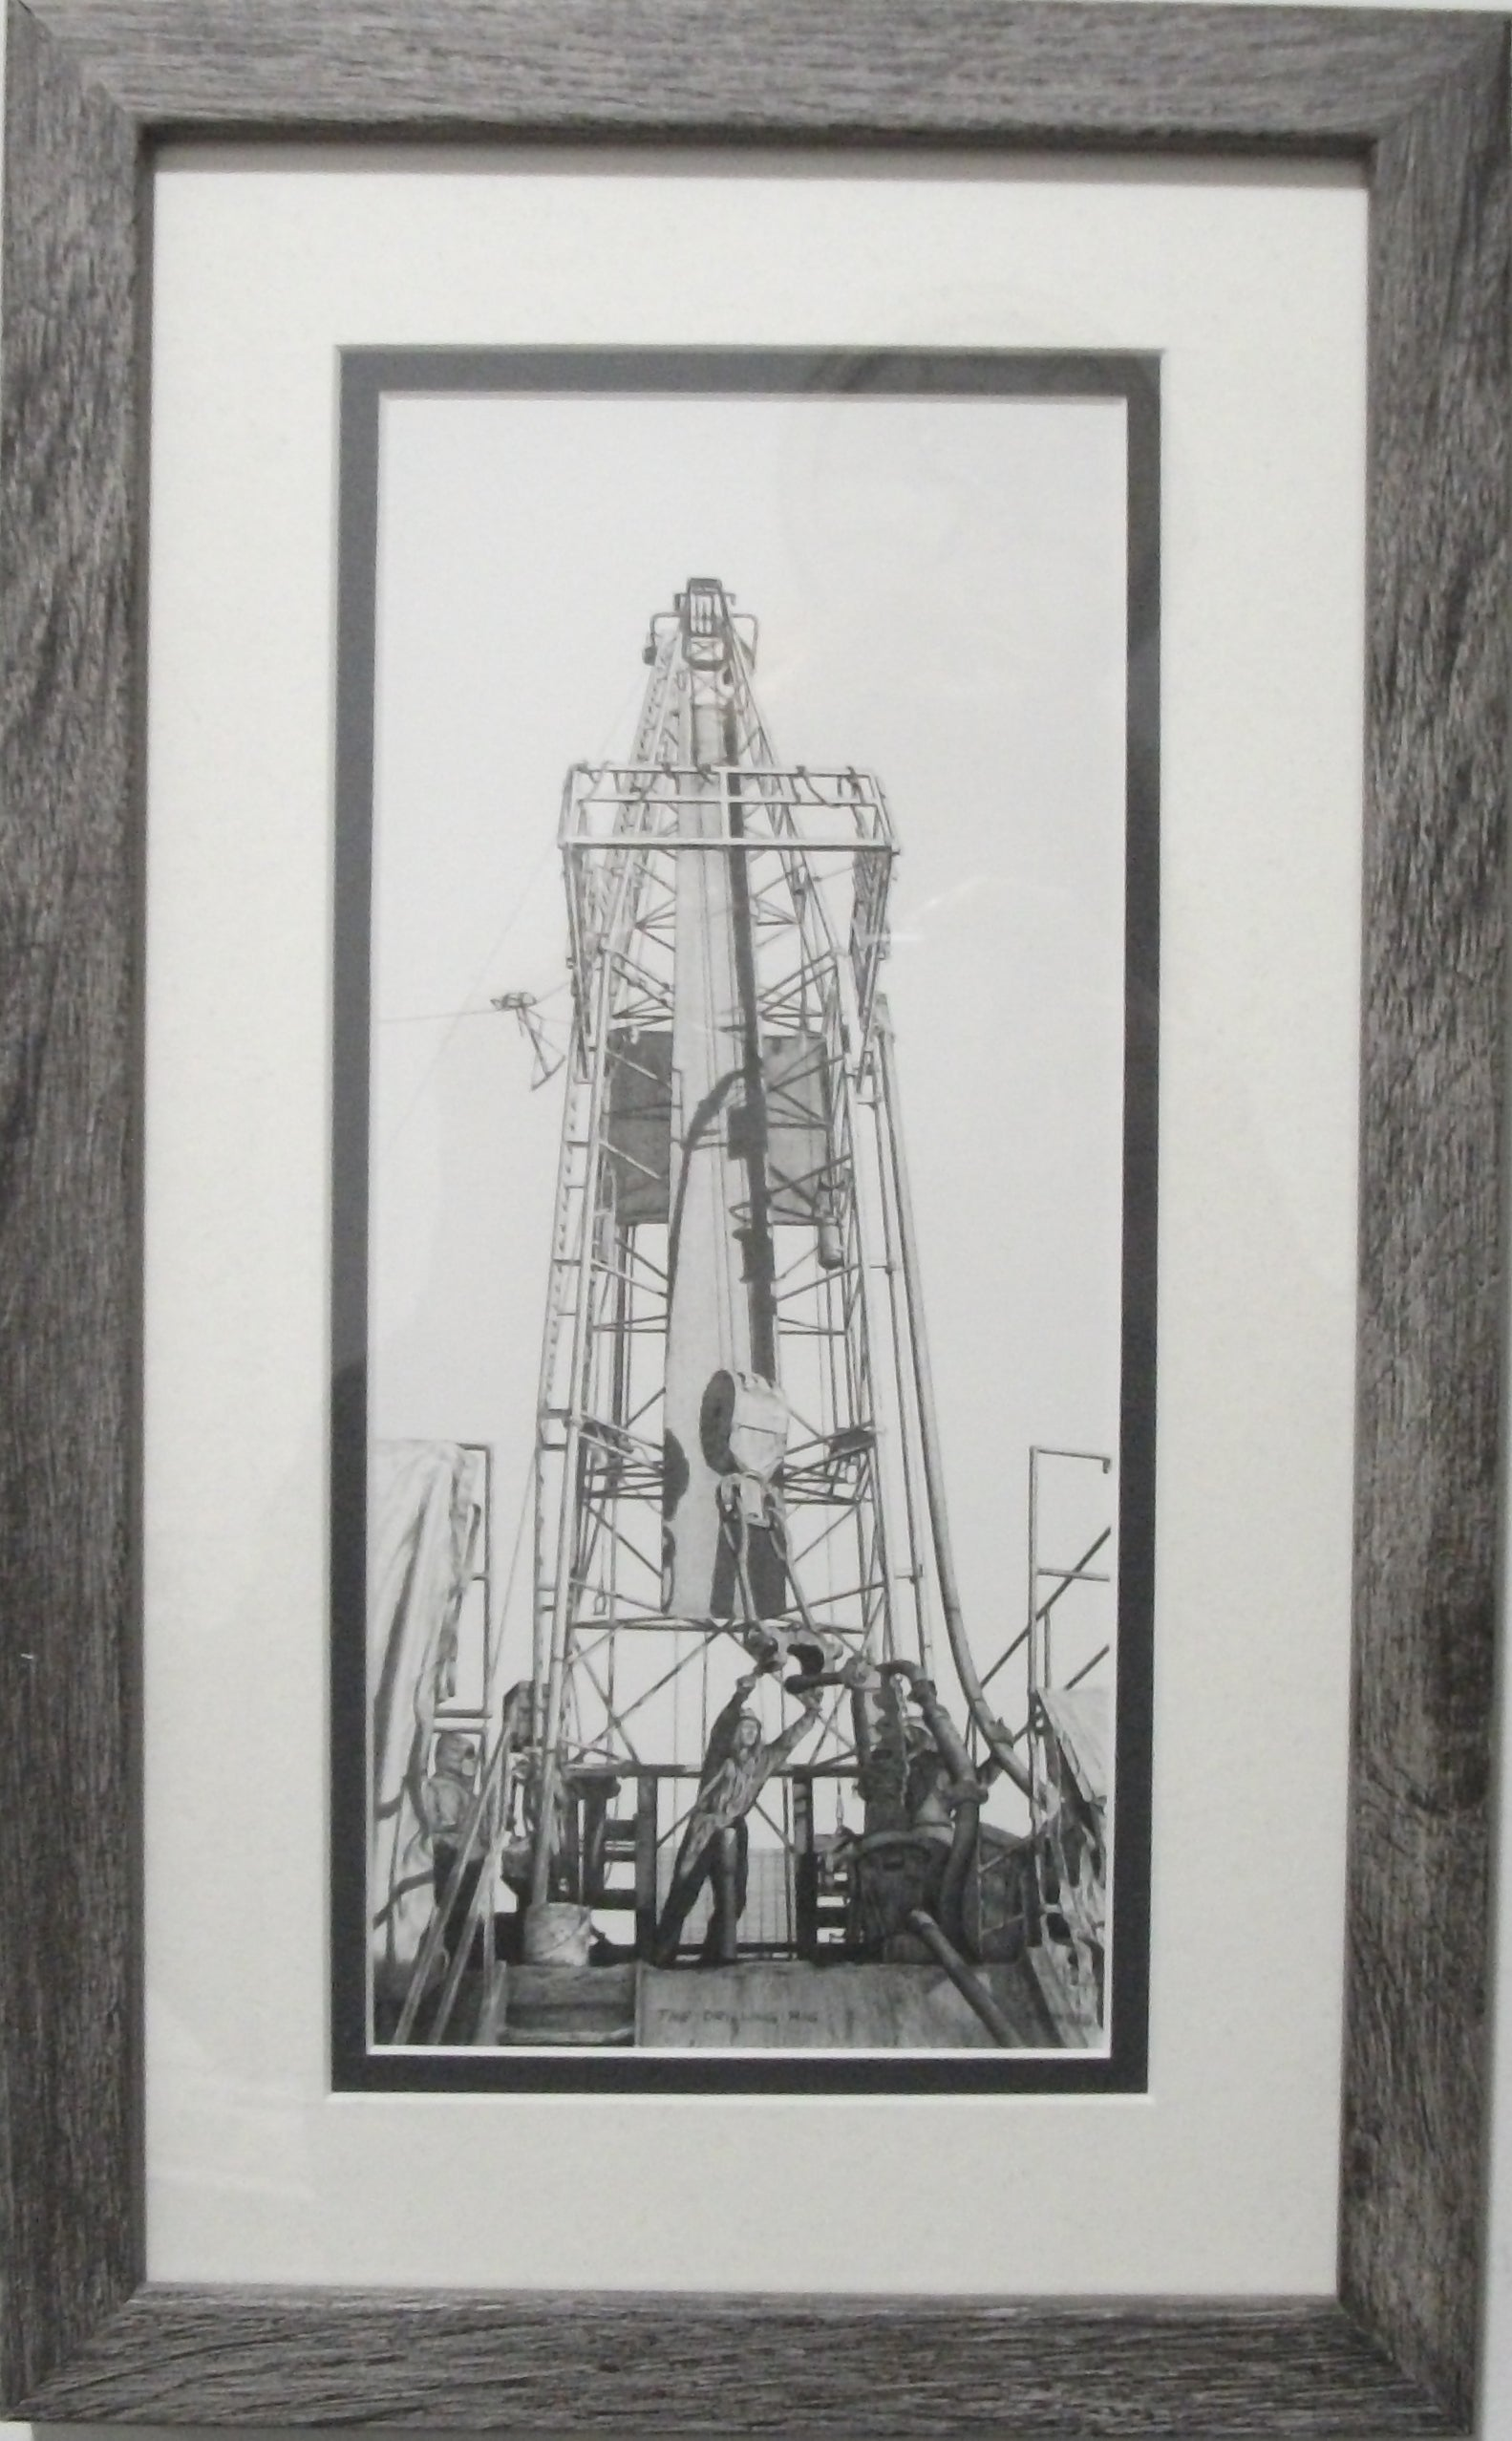 The Drilling Rig by Bernie Brown